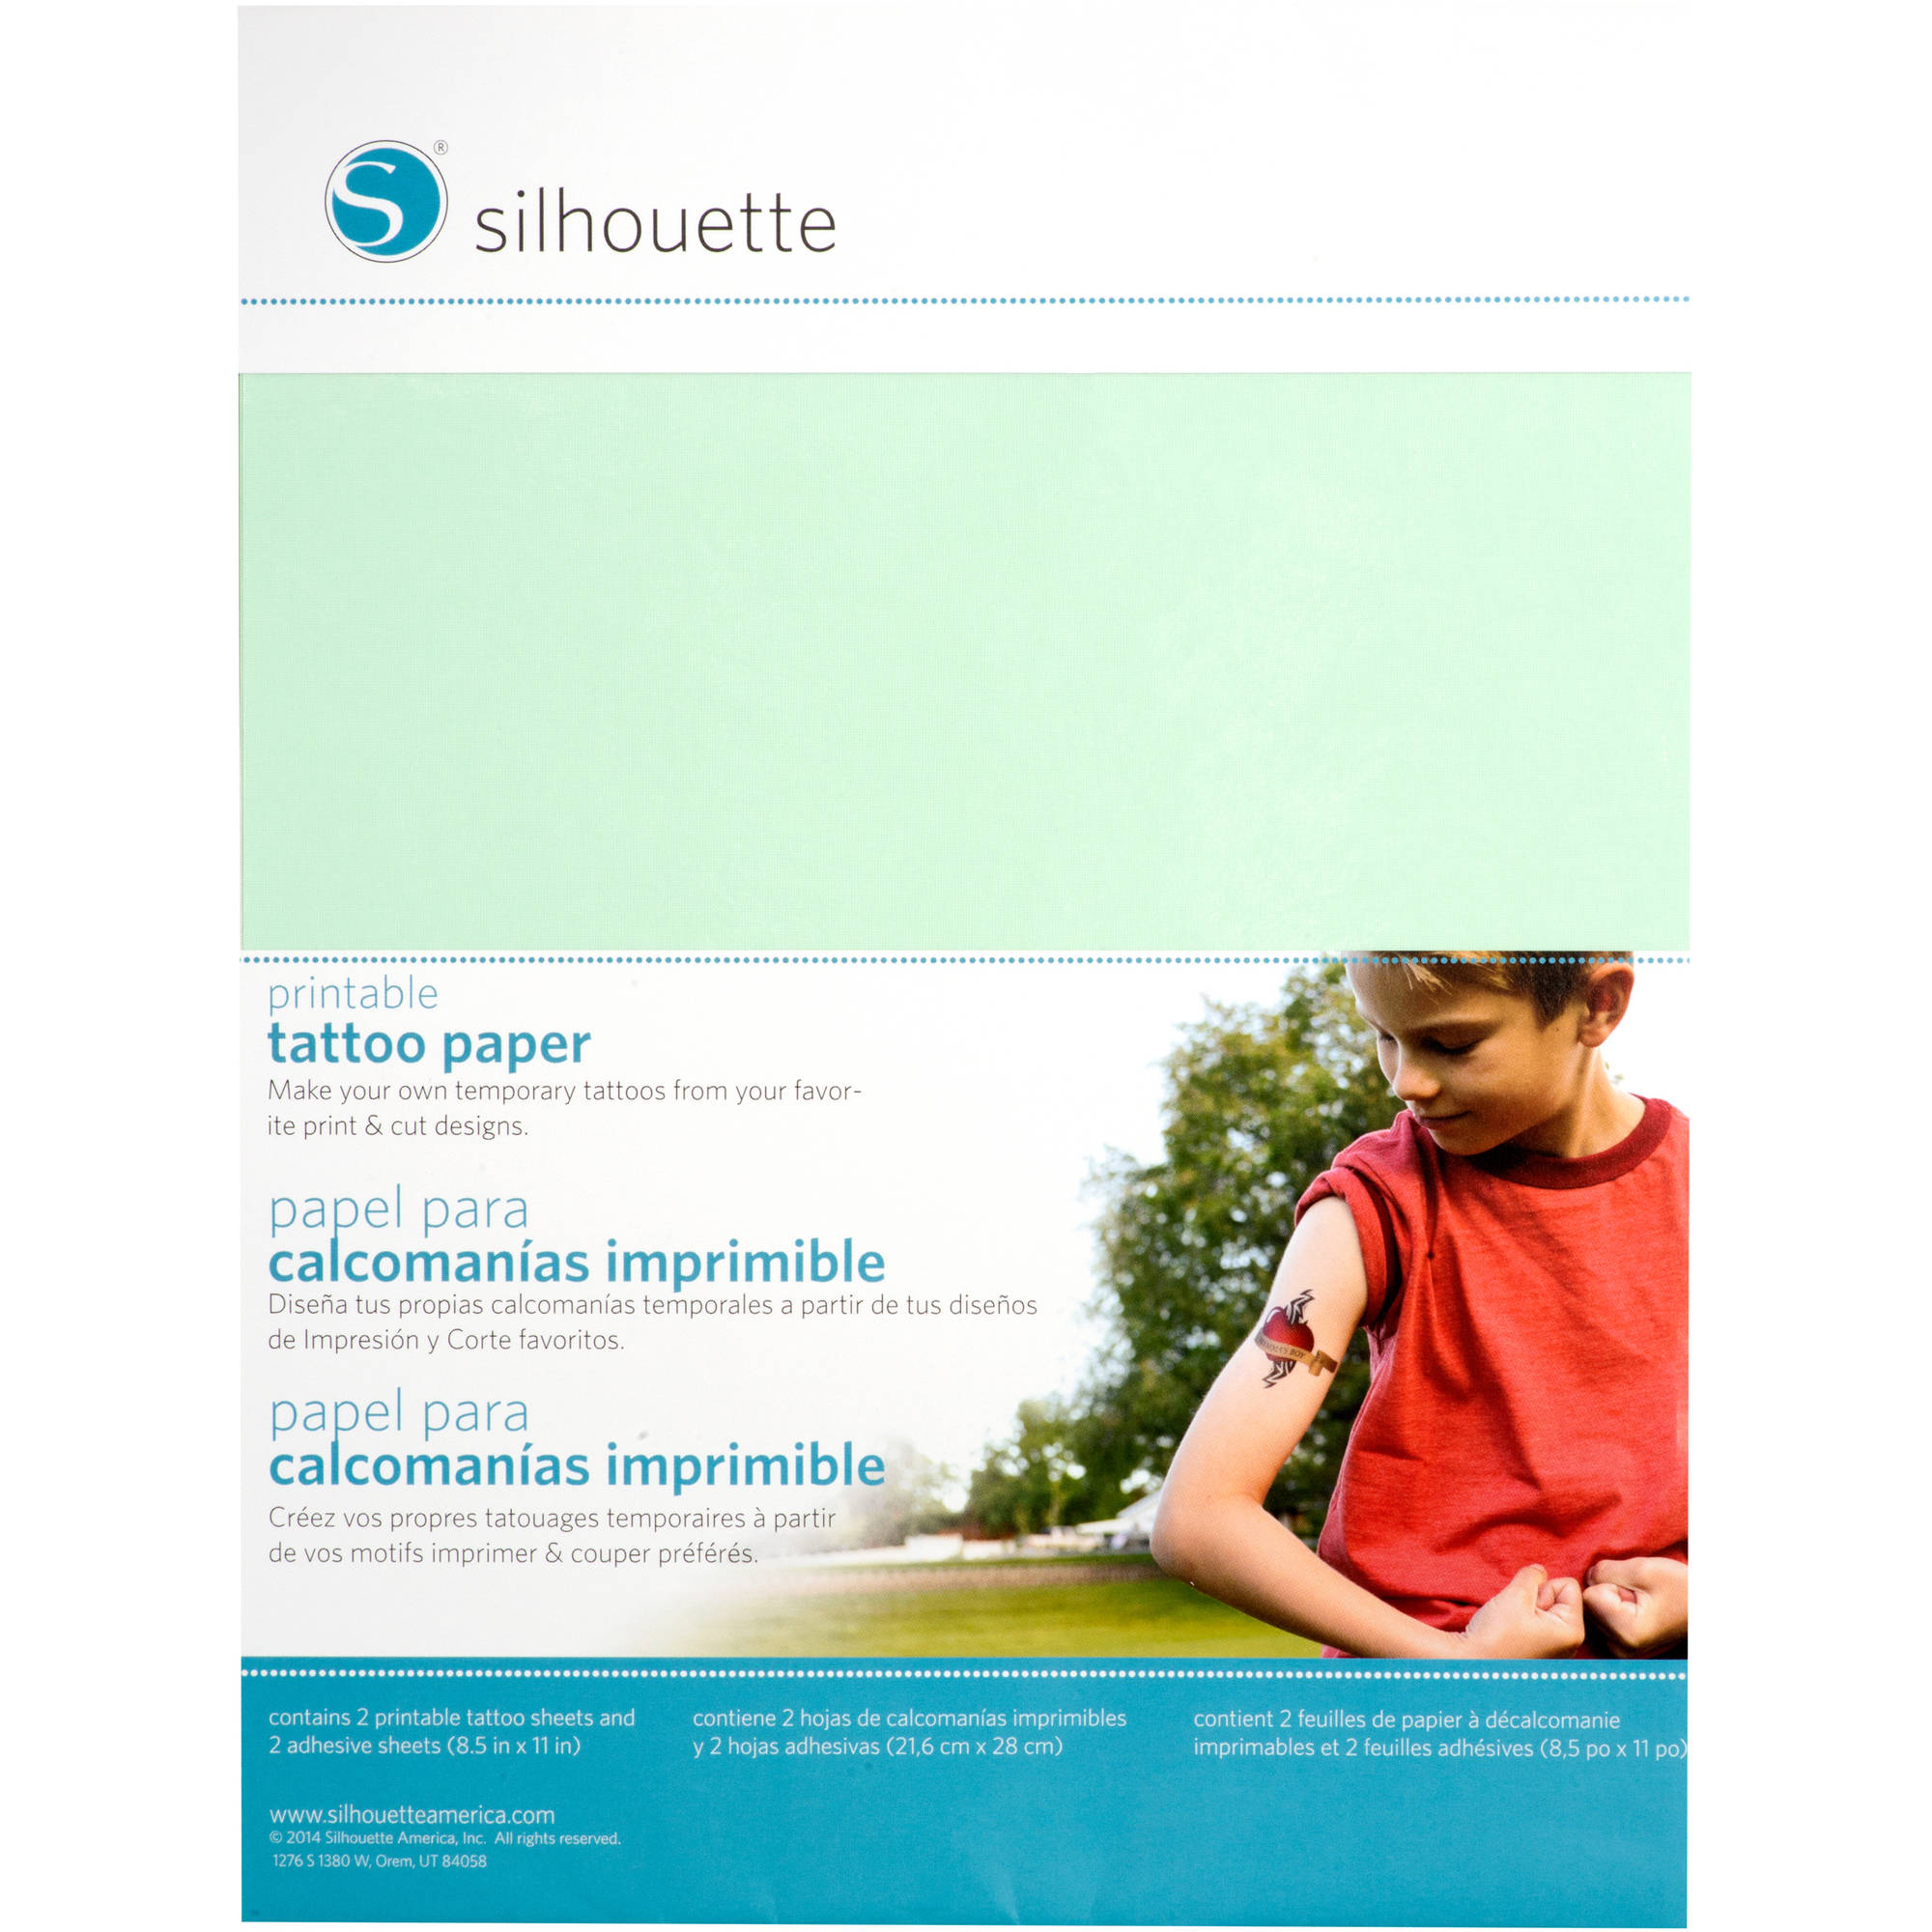 photo about Silhouette Printable Tattoo Paper titled Silhouette Momentary Tattoo Paper, 8.5\